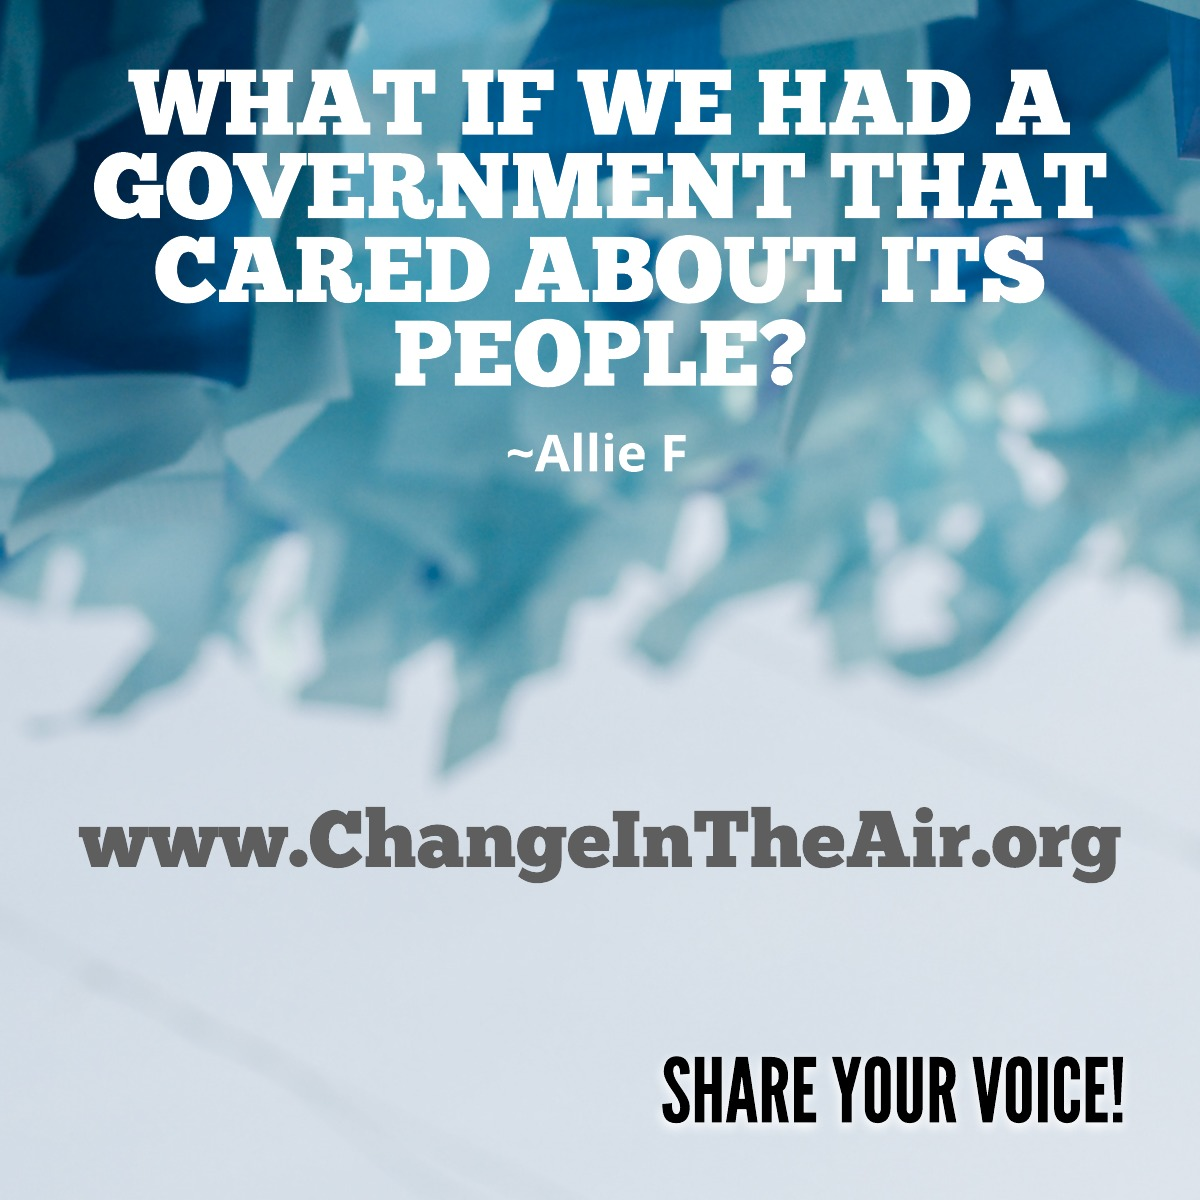 Change in the Air message. What if we had a government that cared about its people?